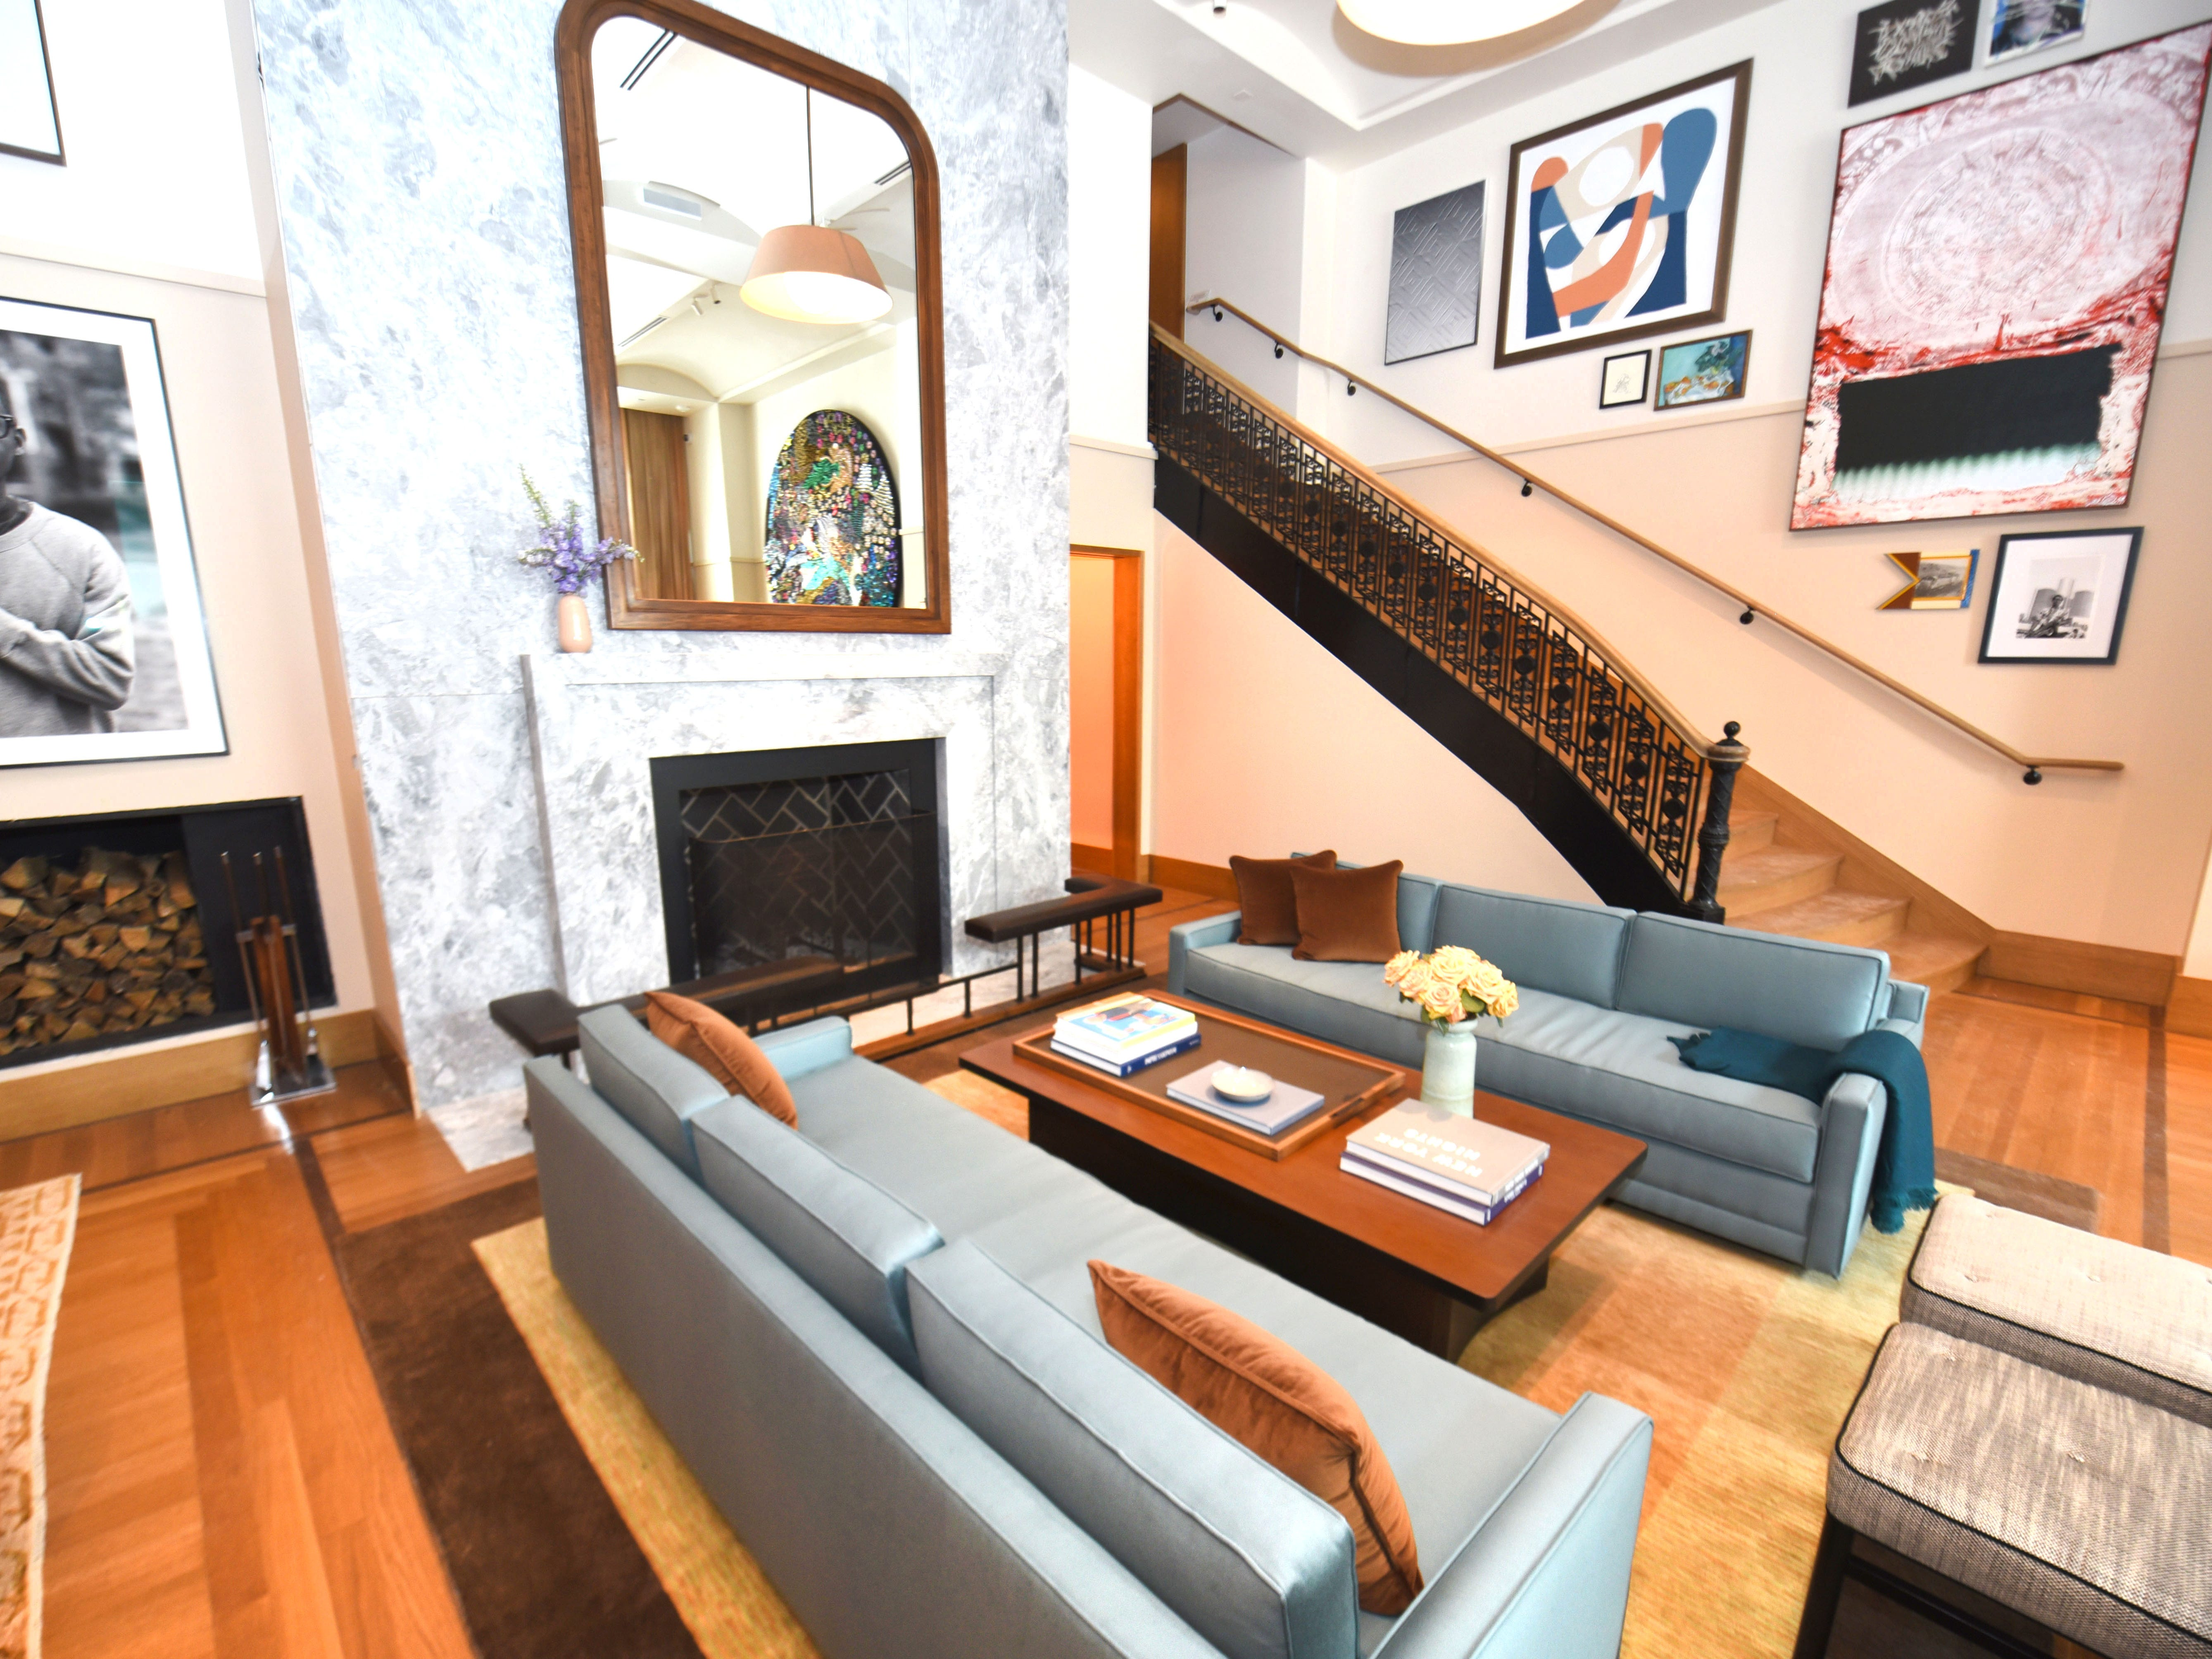 A seating area with a large fireplace is a feature of the main lobby of the Shinola Hotel, which will open January 2, 1019 in downtown Detroit. The space features the building's original staircase.